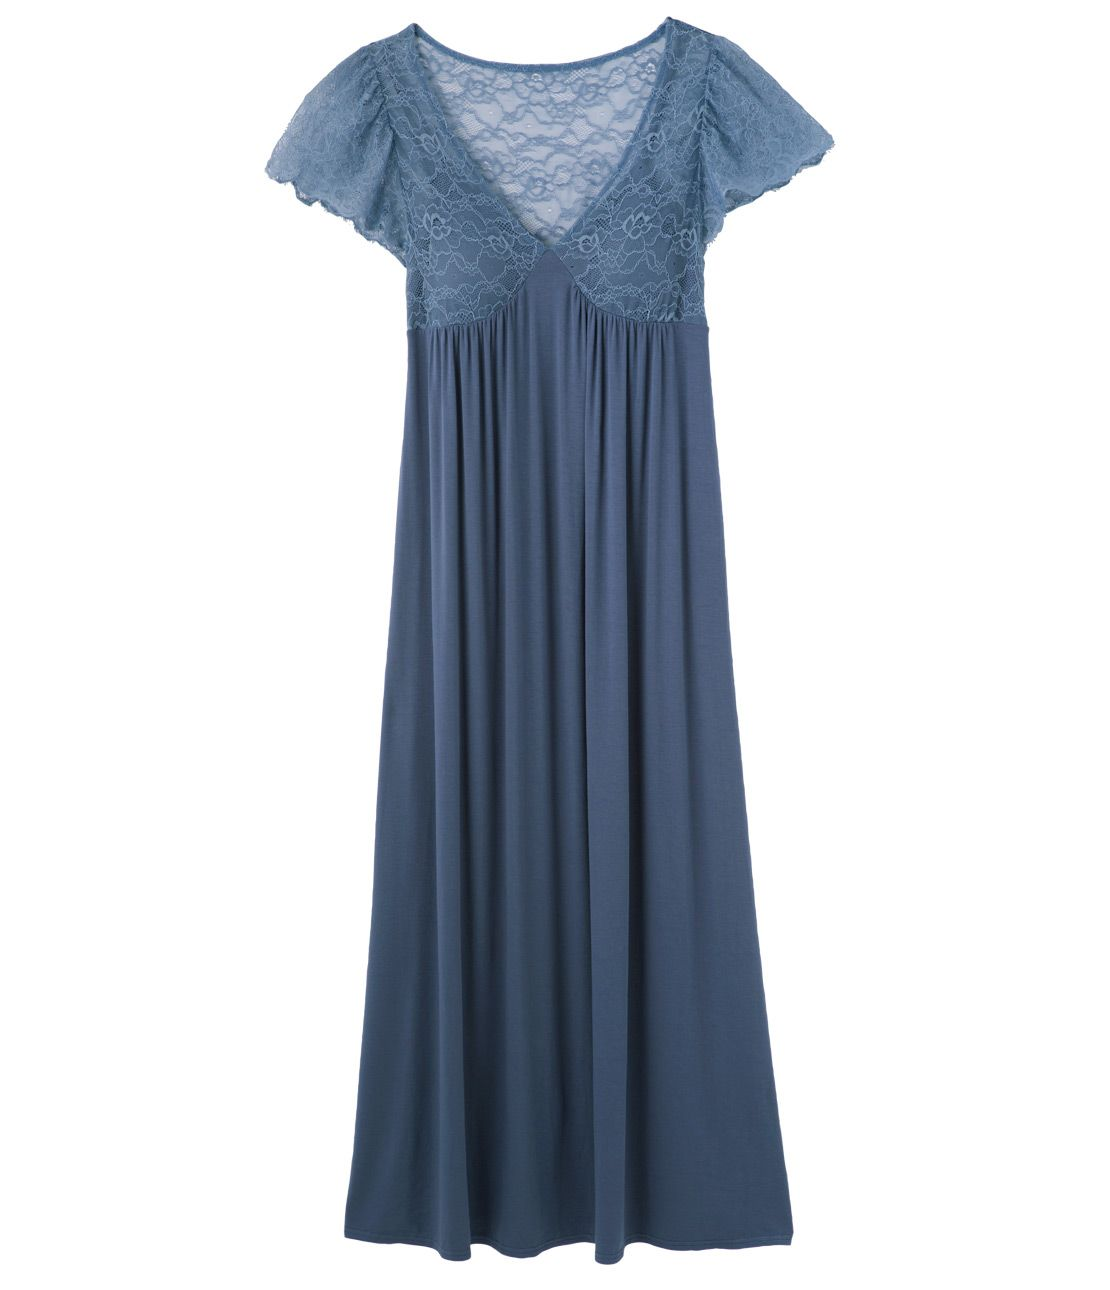 Soft rayon path debt maxi dress